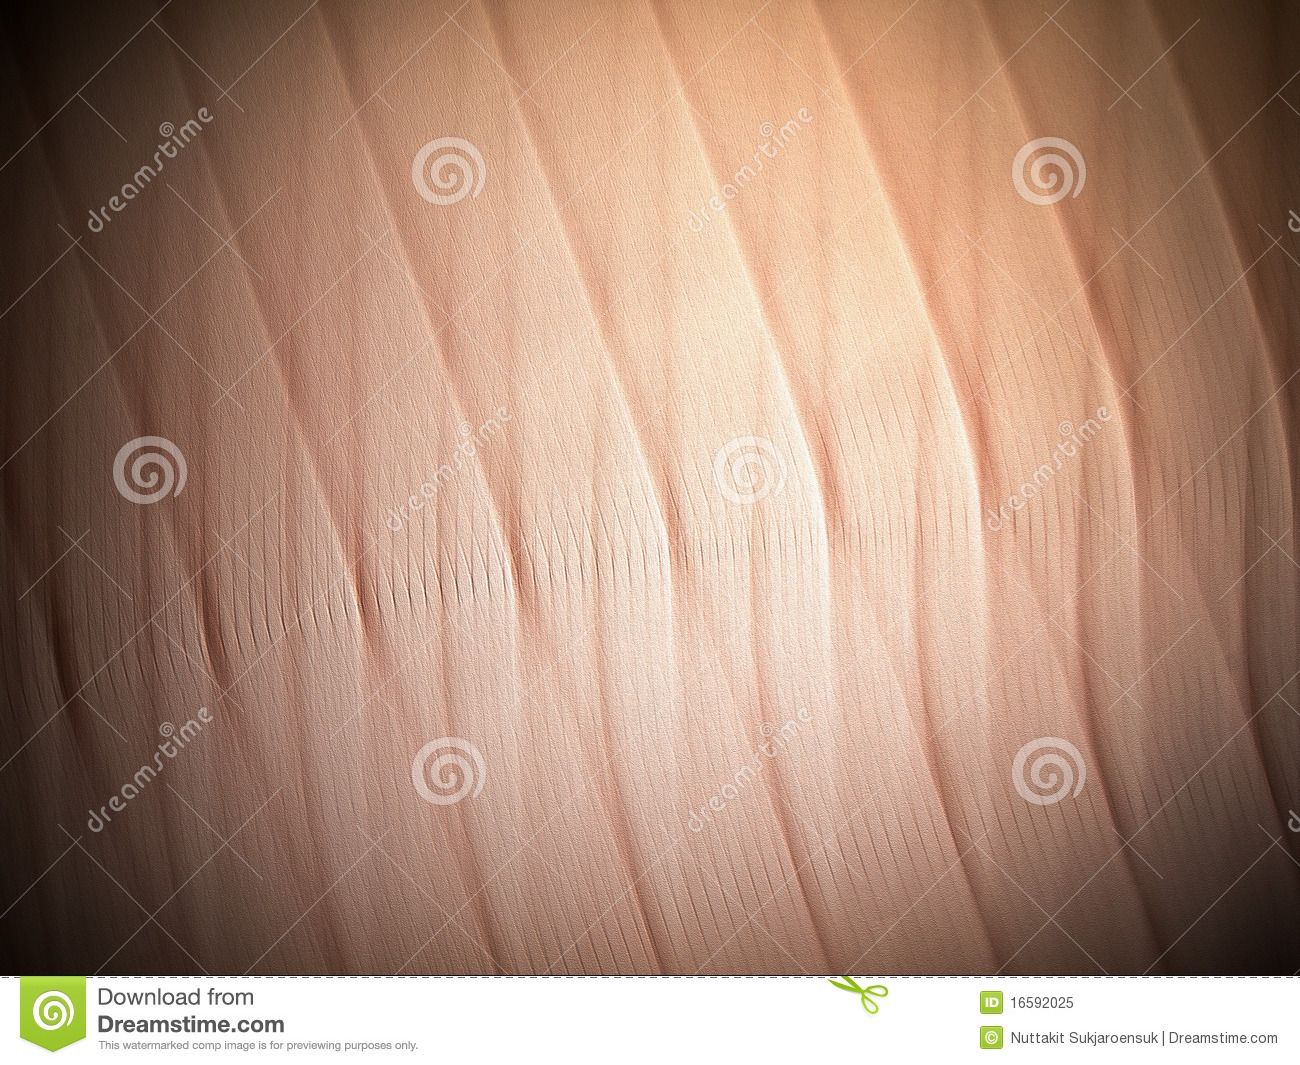 Line And Texture : Line and texture royalty free stock photo image